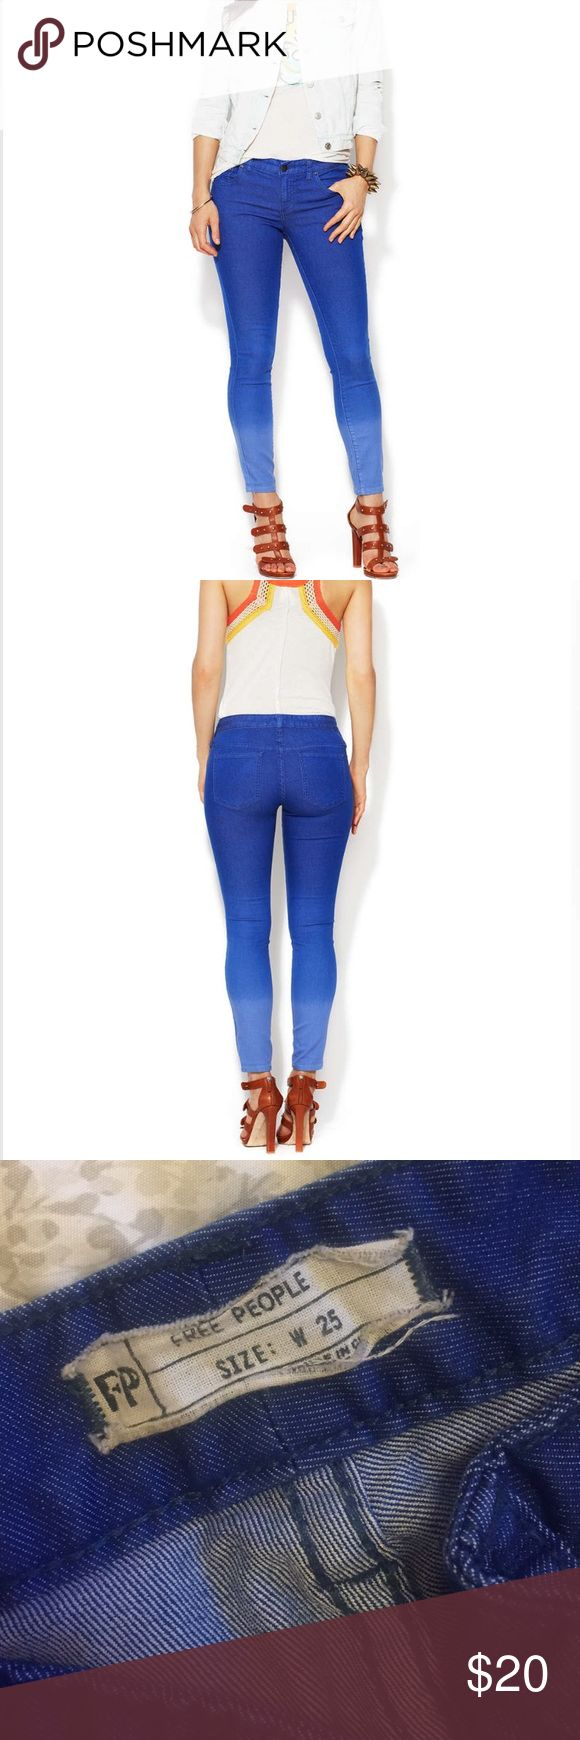 """Free People Ombré Cropped Skinny in Electric Blue Free People Ombré Cropped Skinny in Electric Blue. In GREAT condition. It's just wrinkled a bit from sitting in my closet. Size: 25 